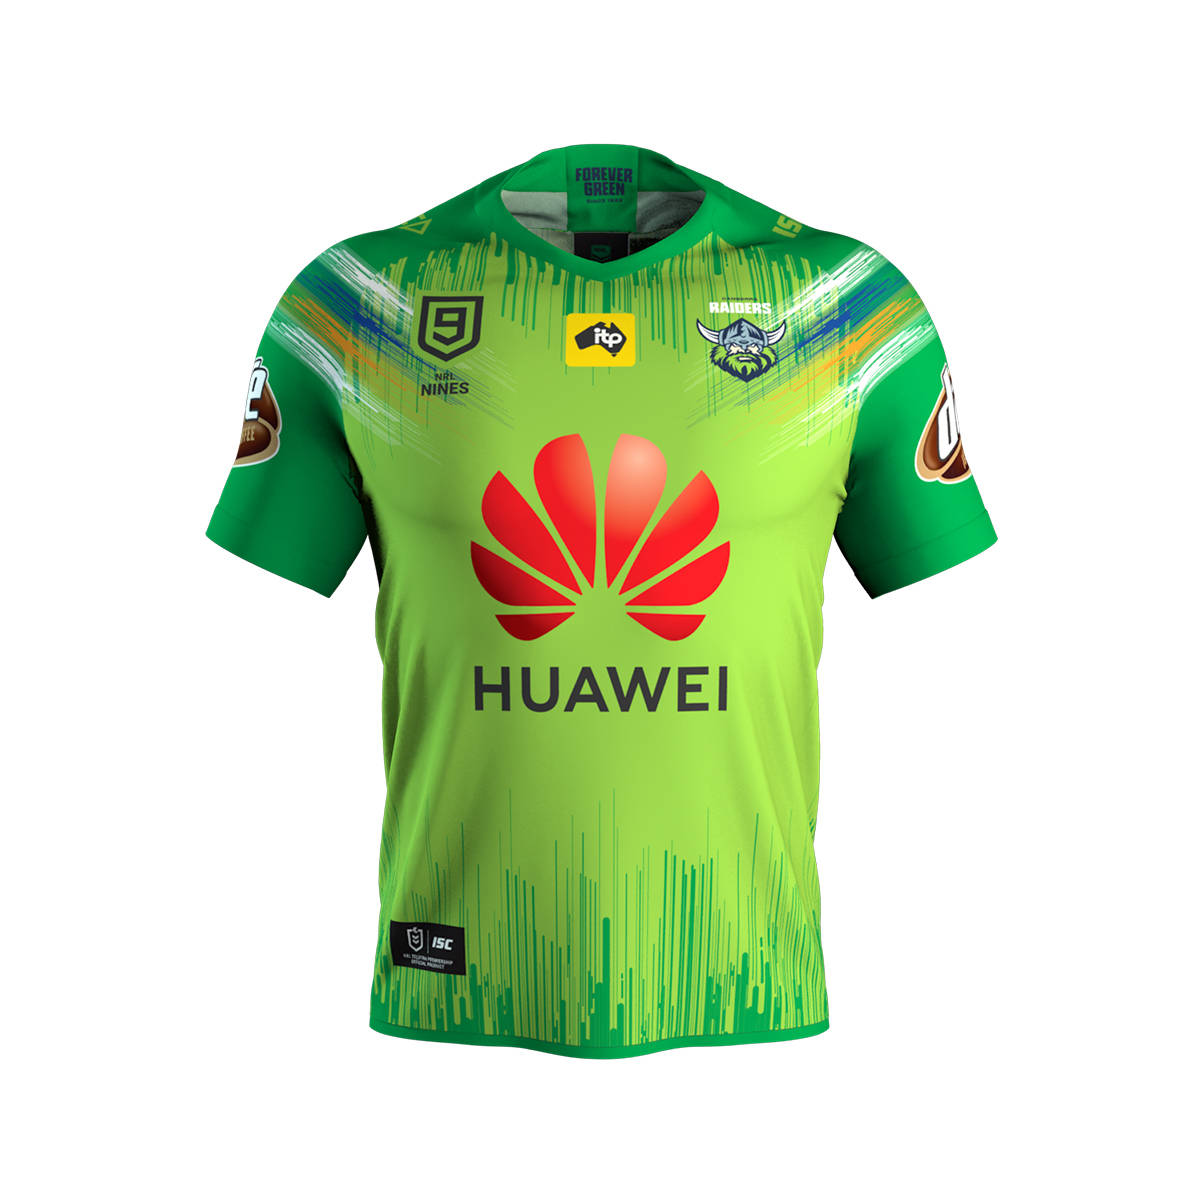 2020 Adults Nines Jersey0